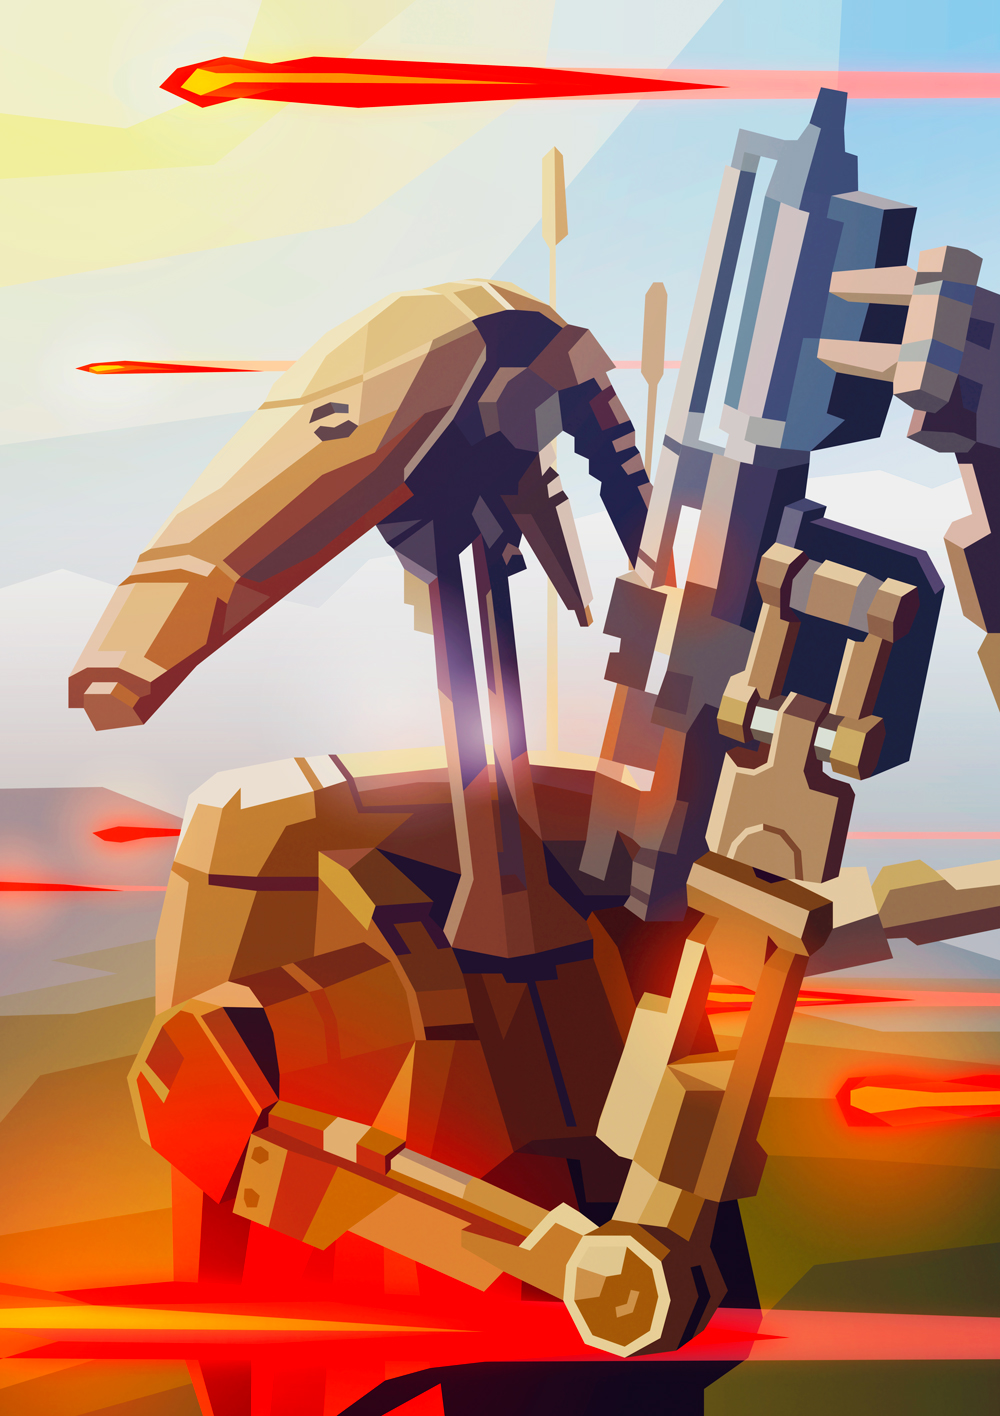 Battle-Droid-web.jpg